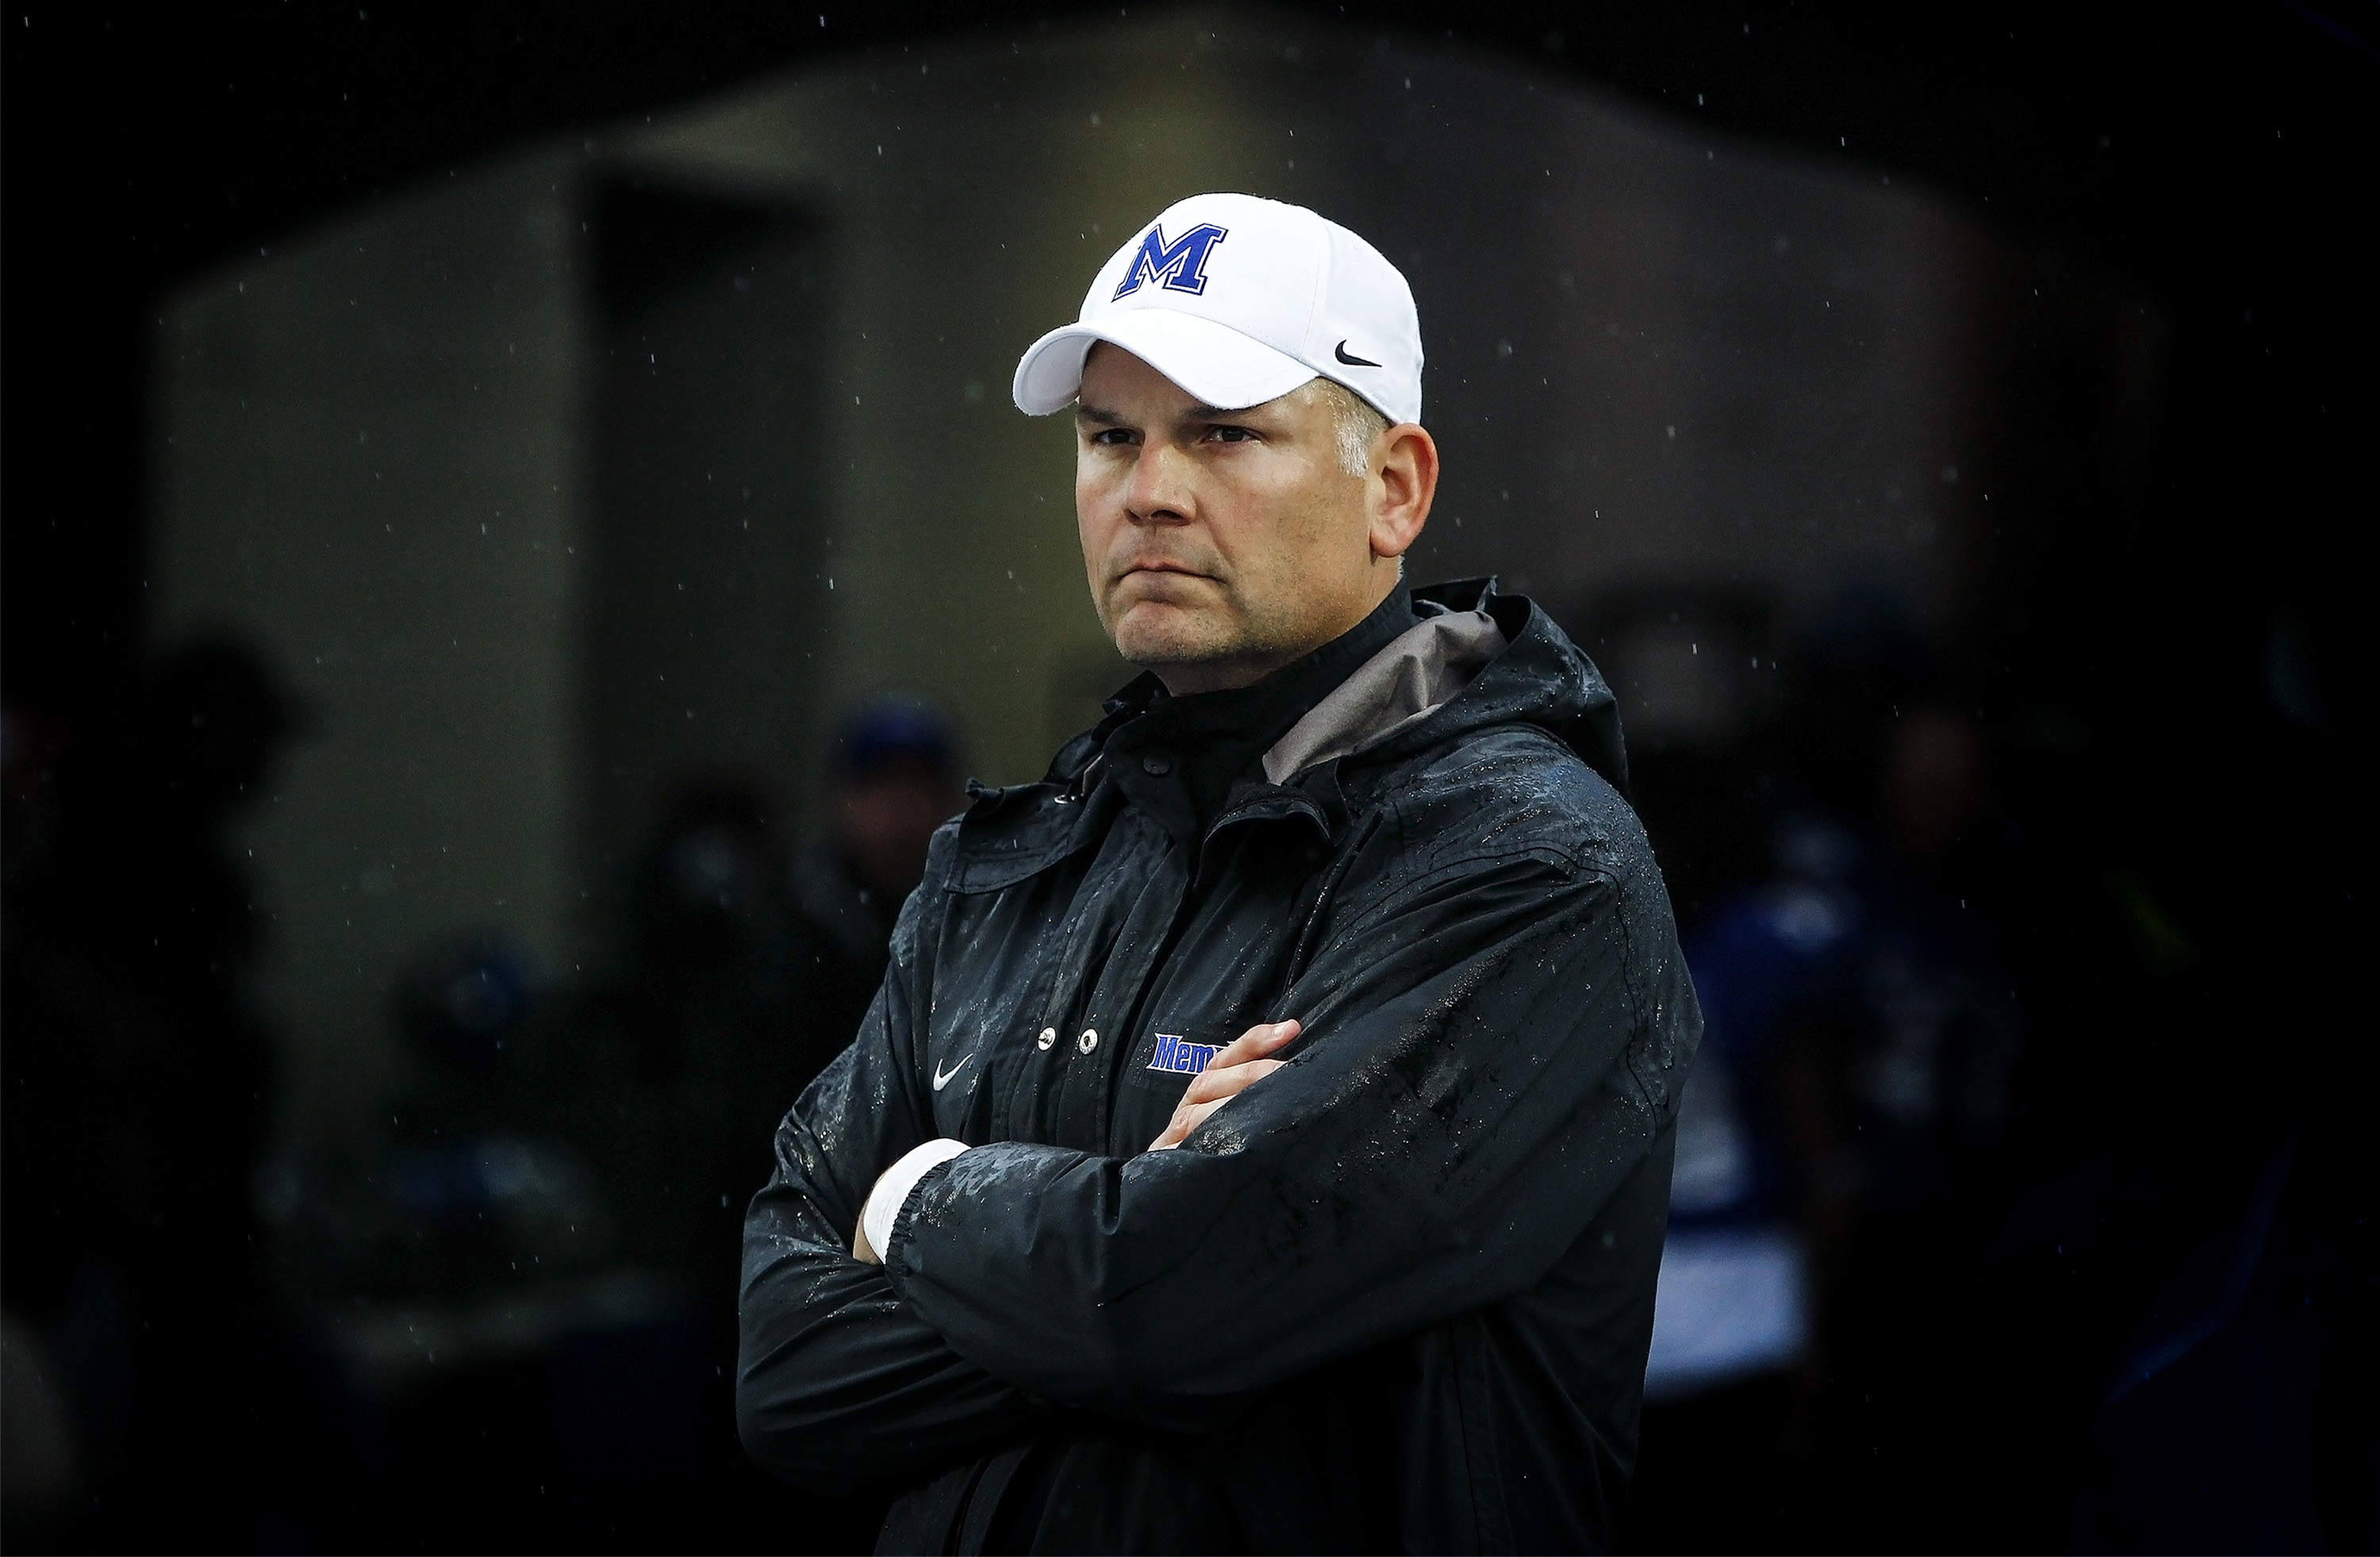 Memphis head coach Justin Fuente looks on before an NCAA college football game against SMU at the Liberty Bowl Memorial Stadium Saturday, Nov. 28, 2015, in Memphis, Tenn. Memphis won 63-0. (Mark Weber/The Commercial Appeal via AP) MANDATORY CREDIT